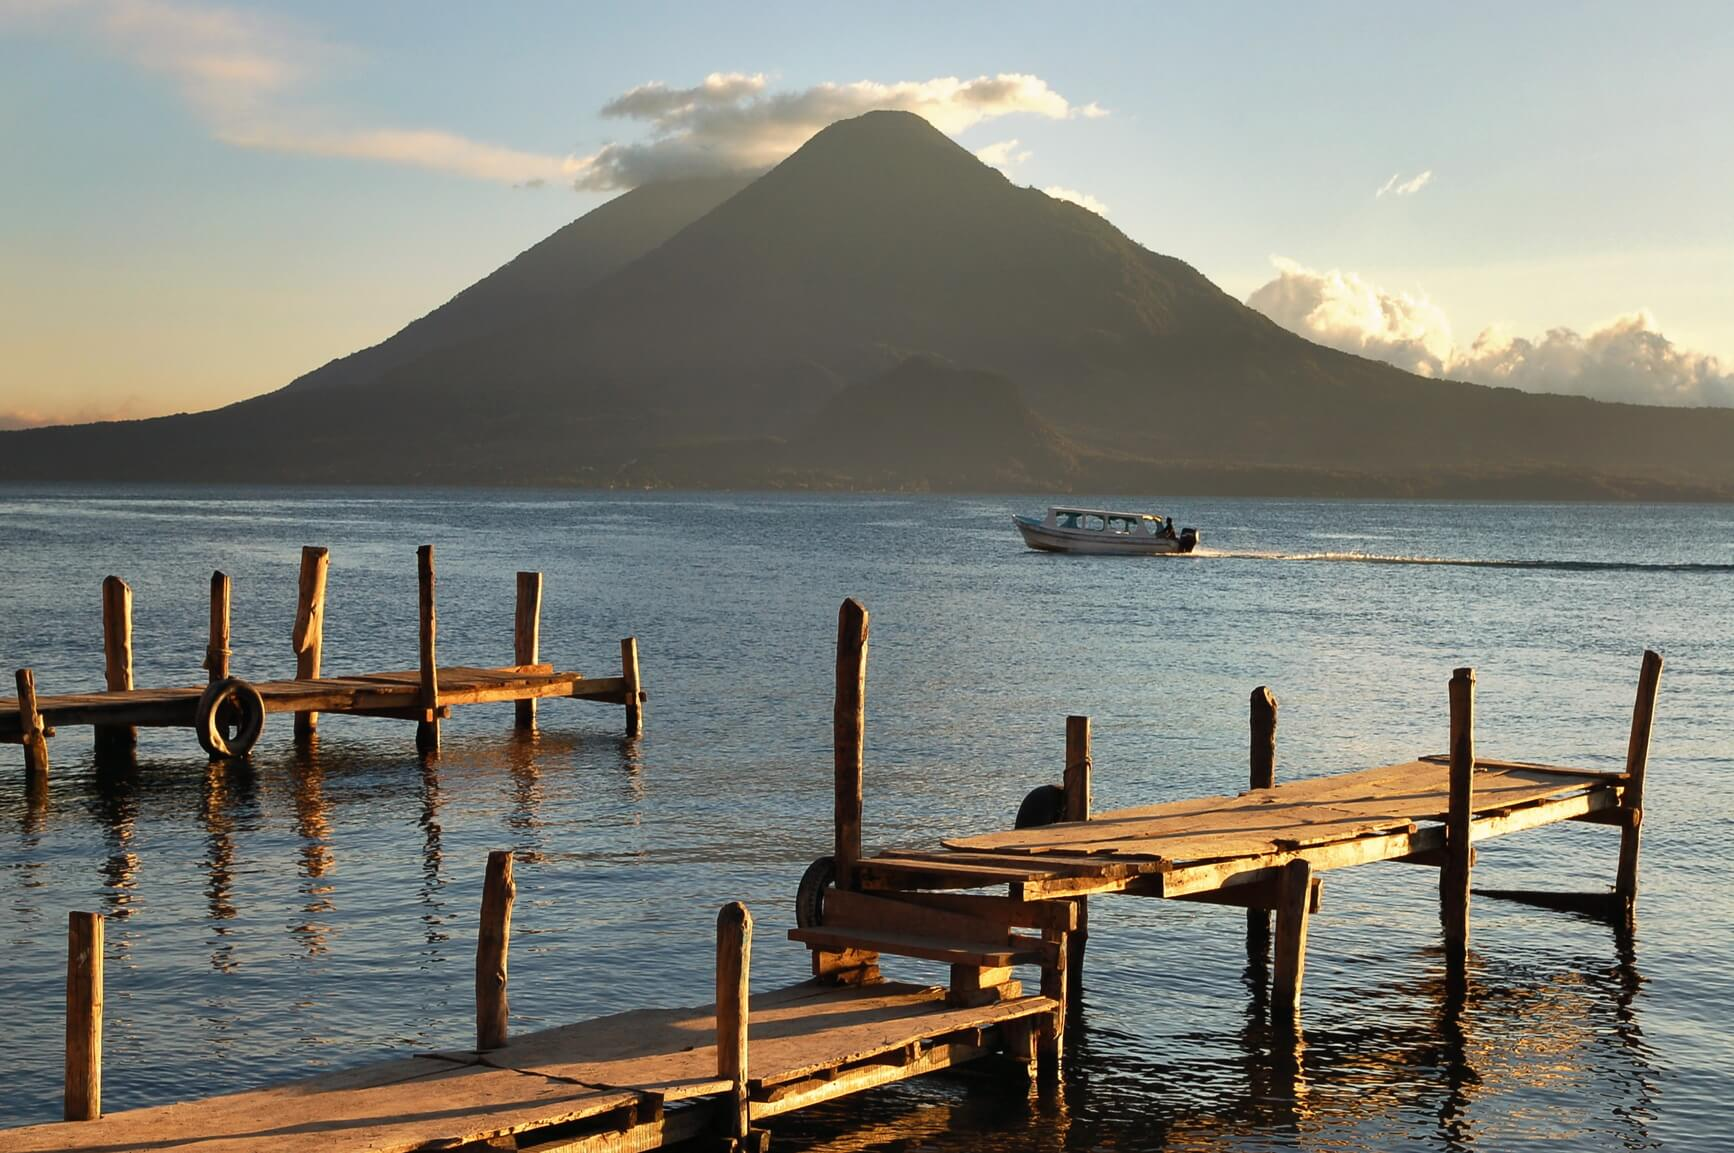 London, UK to Guatemala City, Guatemala for only £354 roundtrip